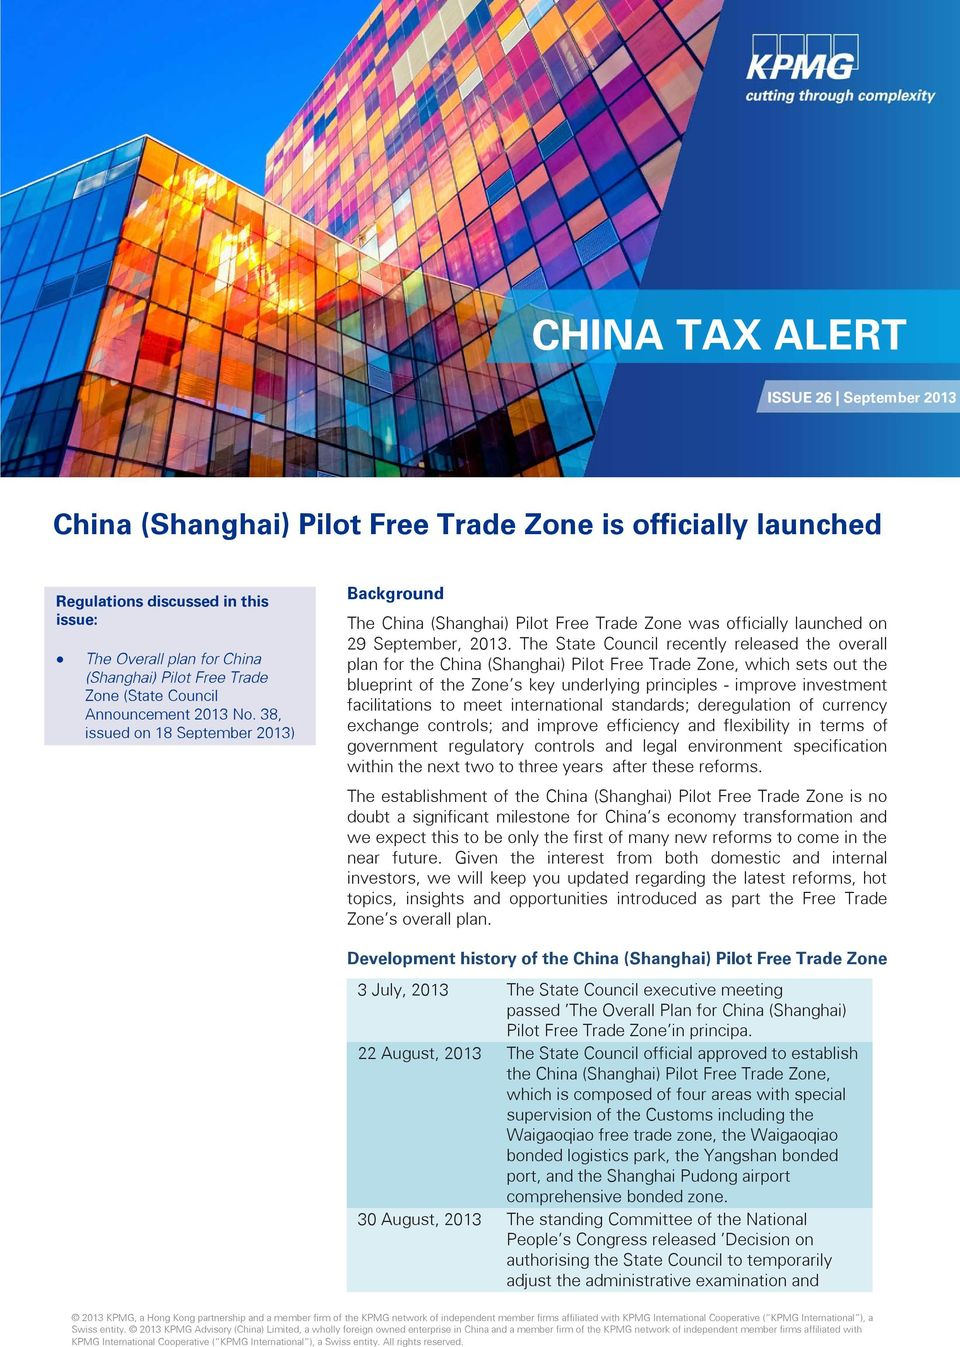 China (Shanghai) Pilot Free Trade Zone is officially